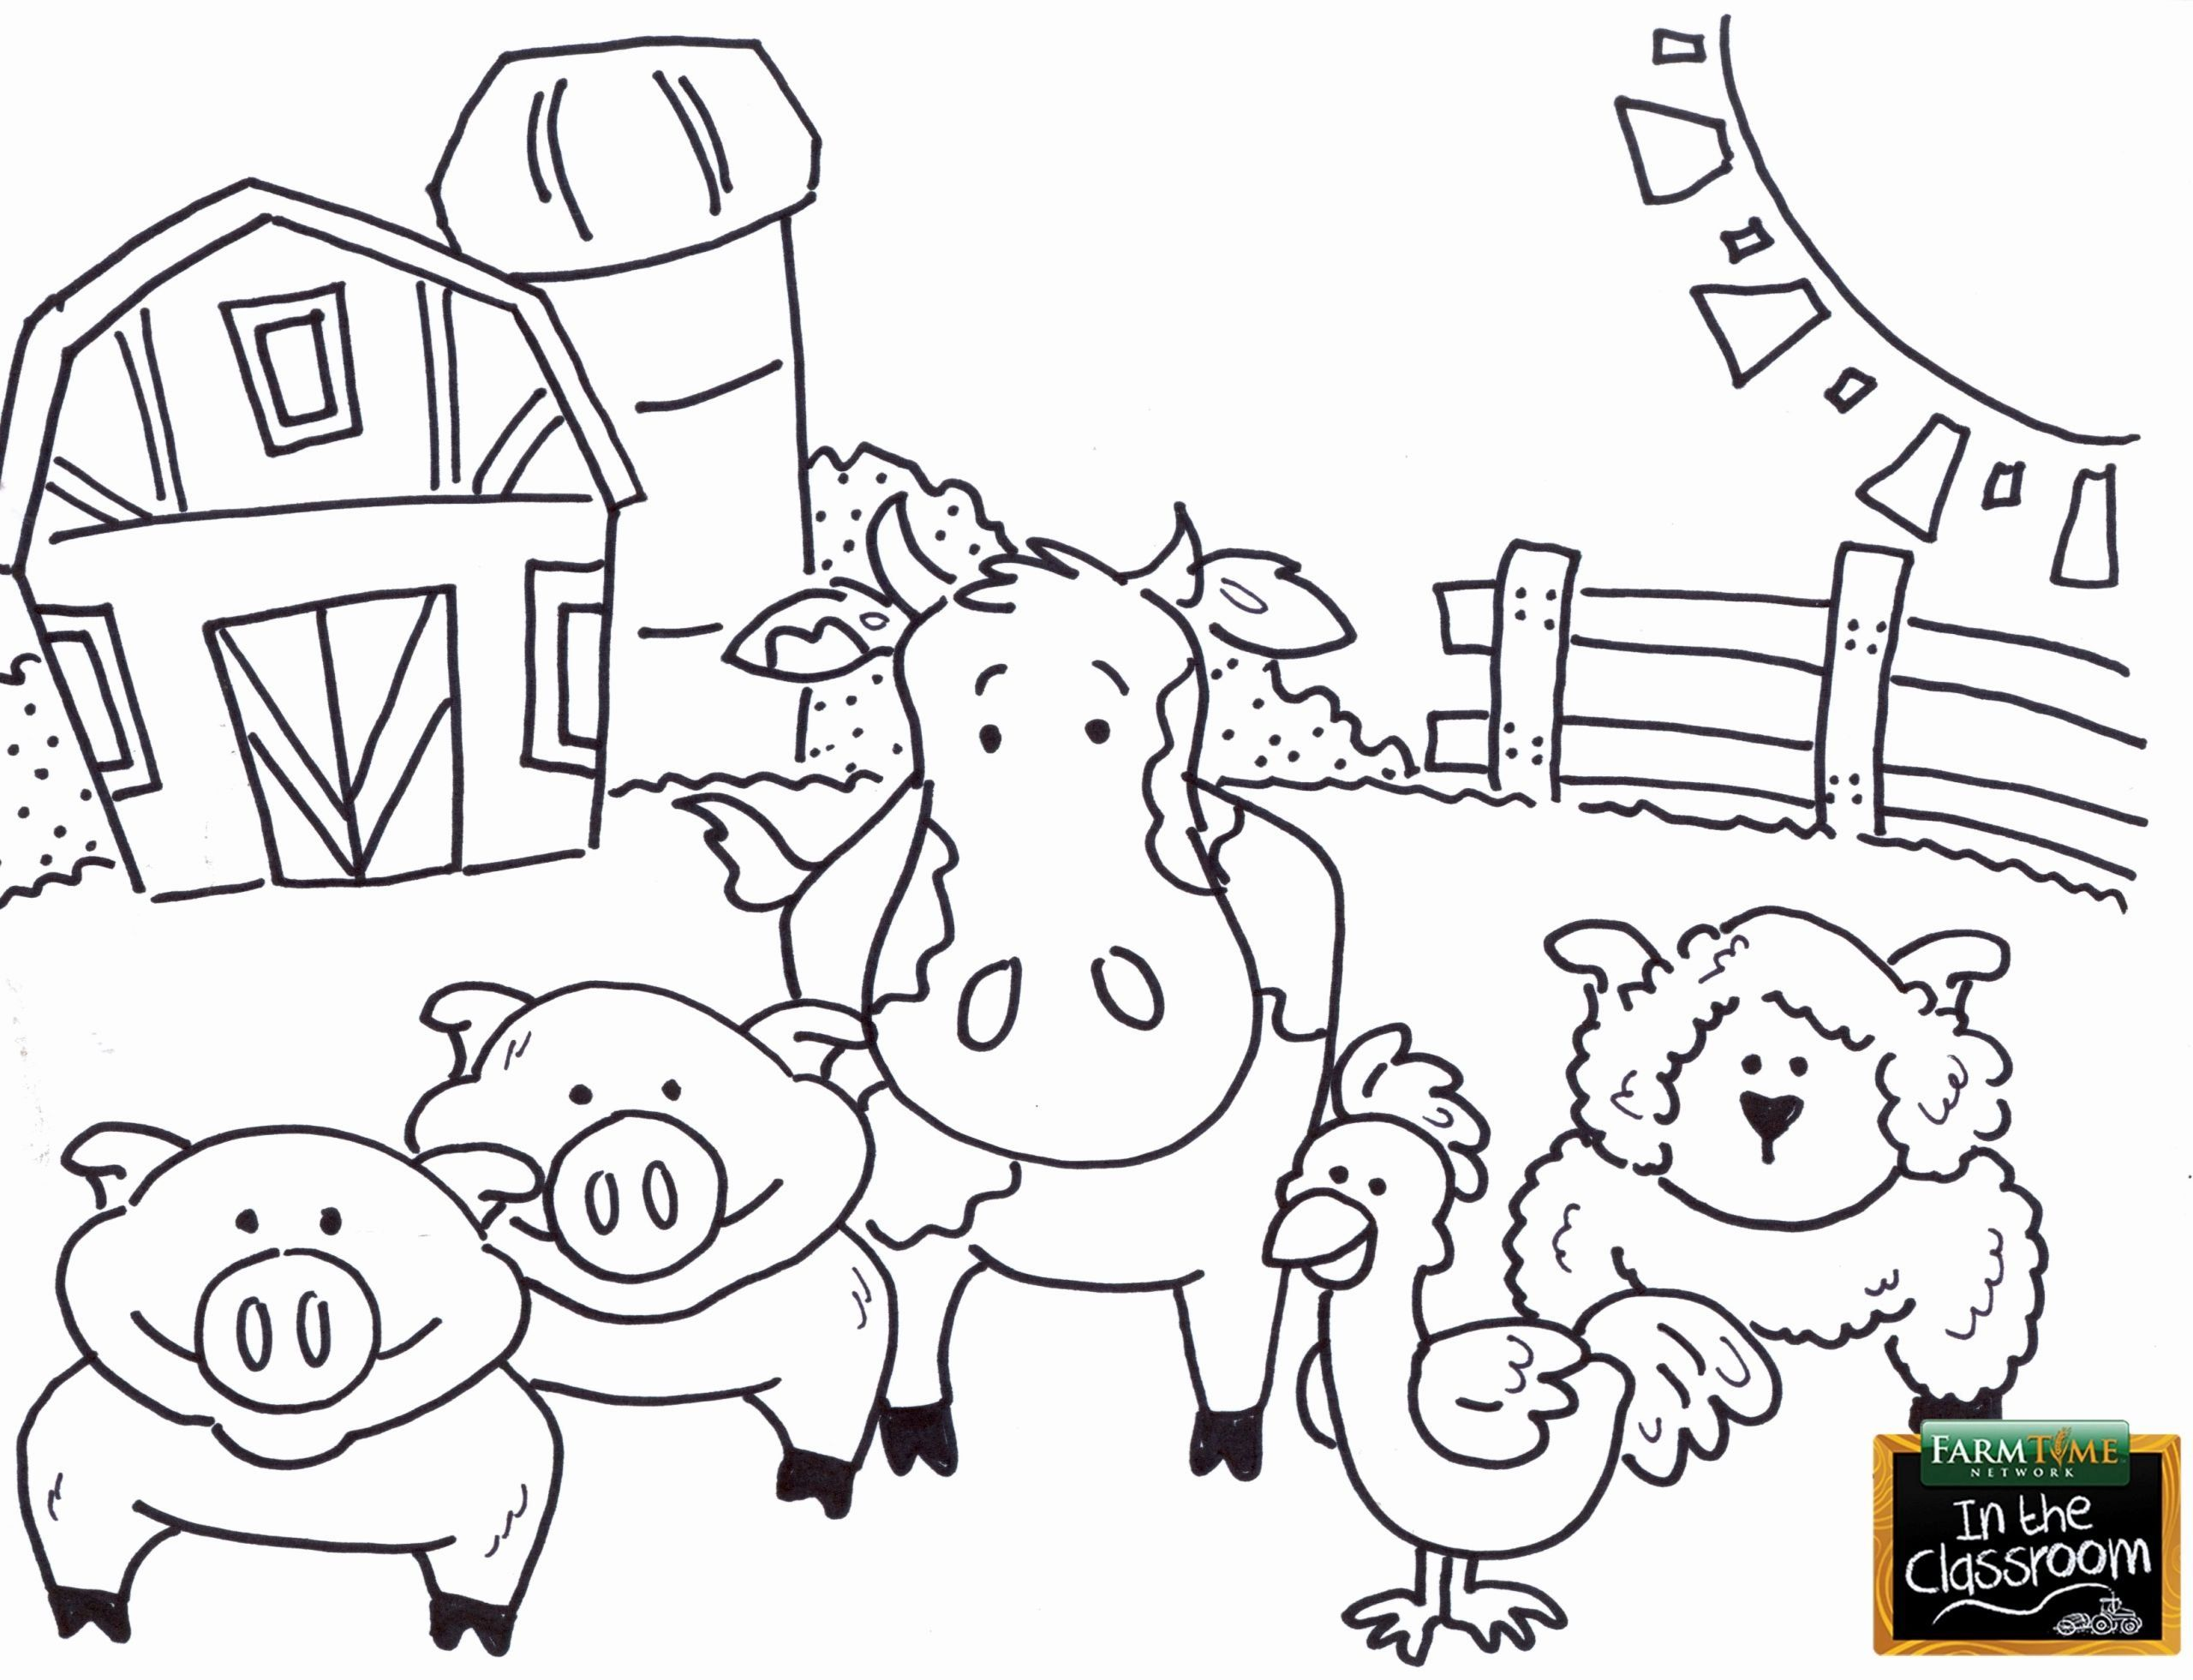 Barnyard Animal Coloring Pages Inspirational Pin By Caiah Wagner On Agriculture In 2020 Farm Animal Coloring Pages Farm Coloring Pages Coloring Pages